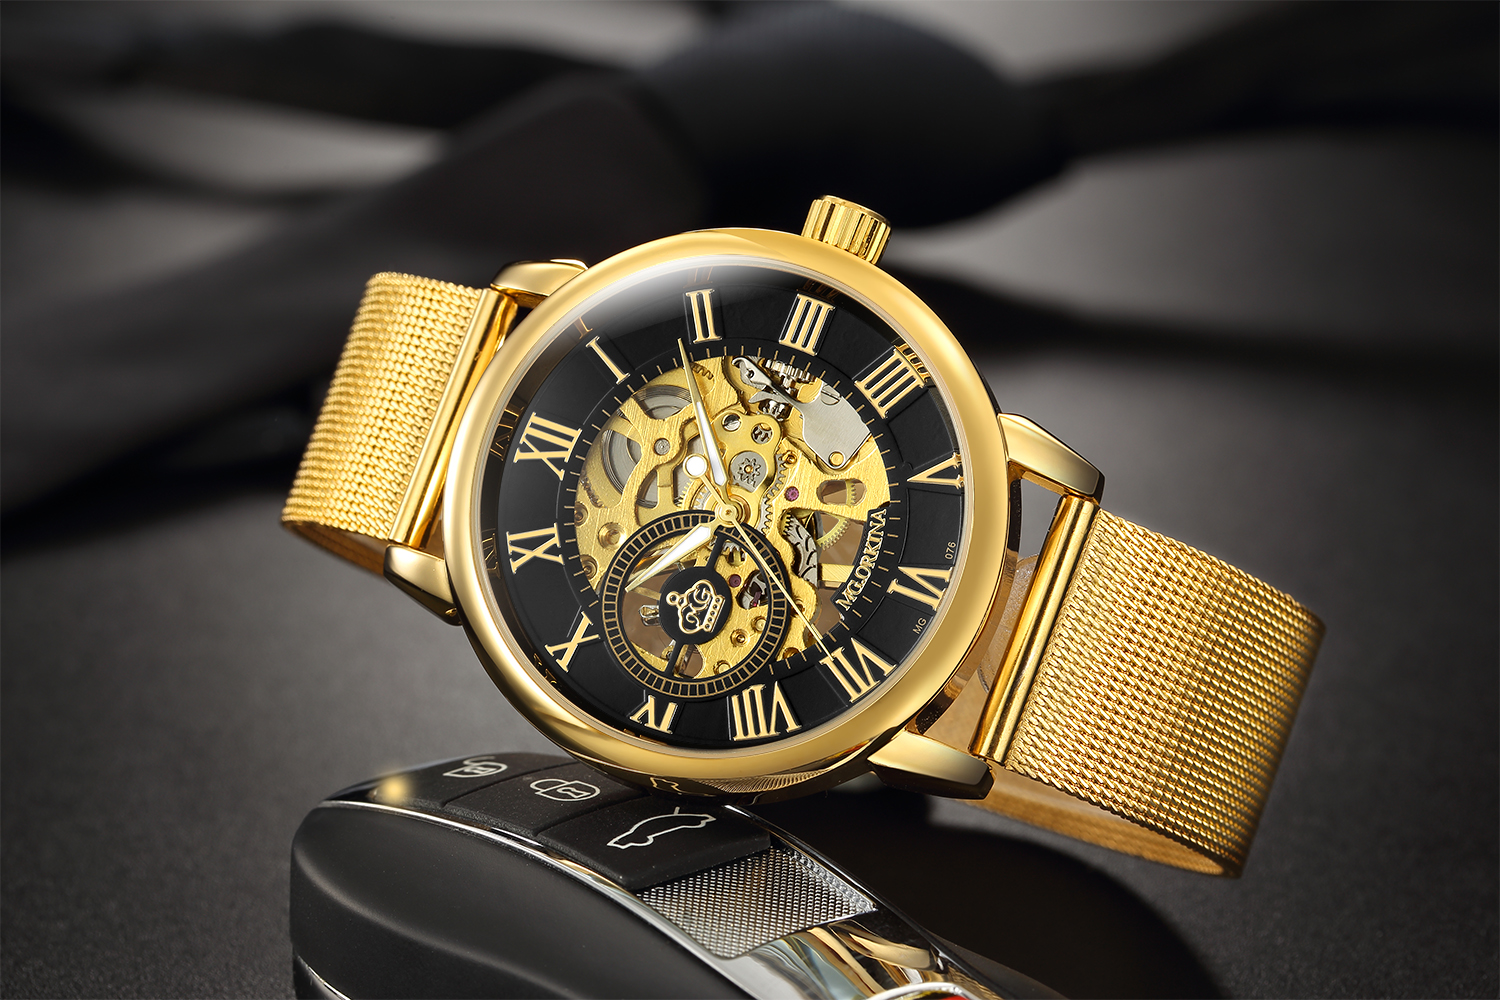 Hde5533a15ed4440e89fc5f256b04bd32F Coupons Sale Men Watches Mechanical Hand Wind Luxury Top Brand ORKINA Skeleton Stainless Steel Bracelet Mesh Strap Men's Watches